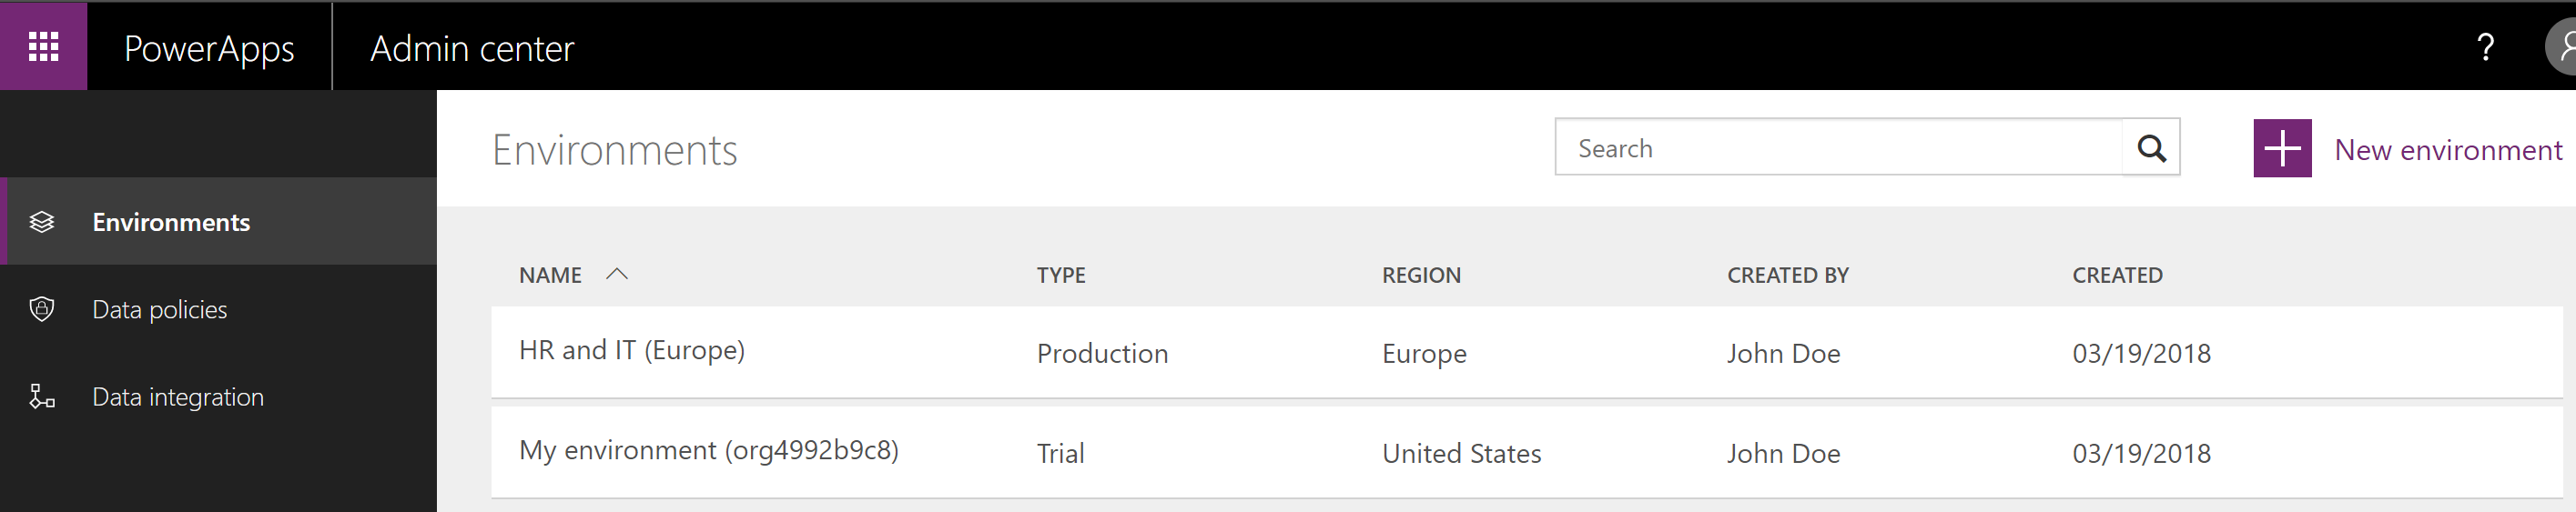 Manage environments in the PowerApps Admin center - Power Platform